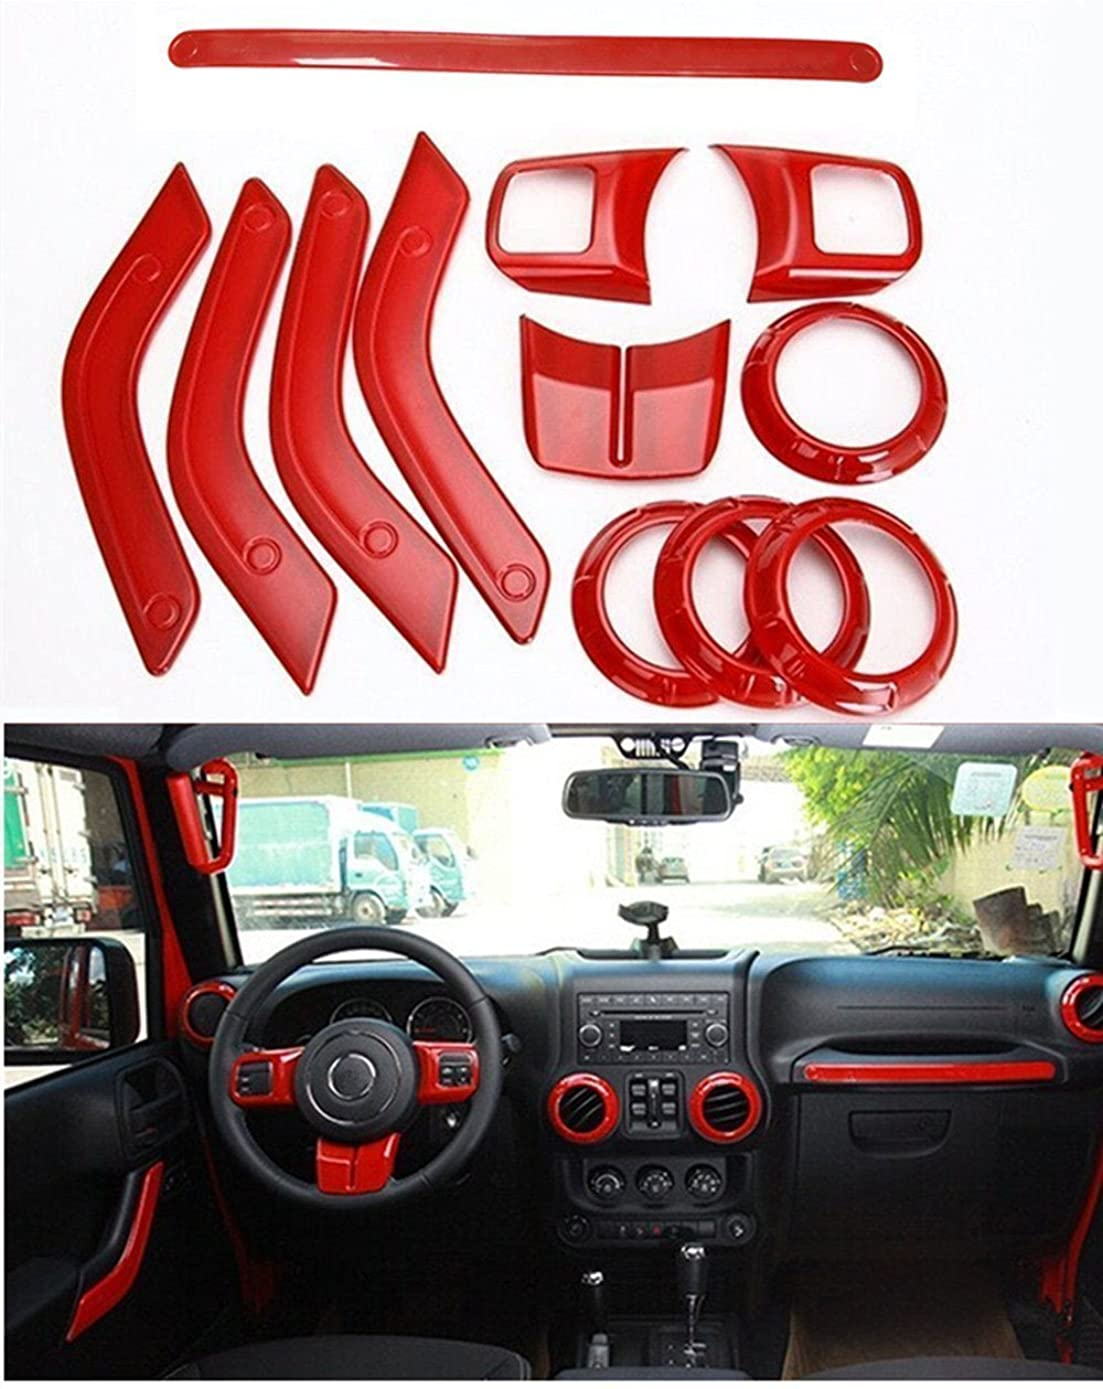 FMtoppeak 12pc/Kits Red ABS Auto Interior Parts Decoration Car Inner Dashboard Trim Cover for Jeep Wrangler 4 Door 2011-2016